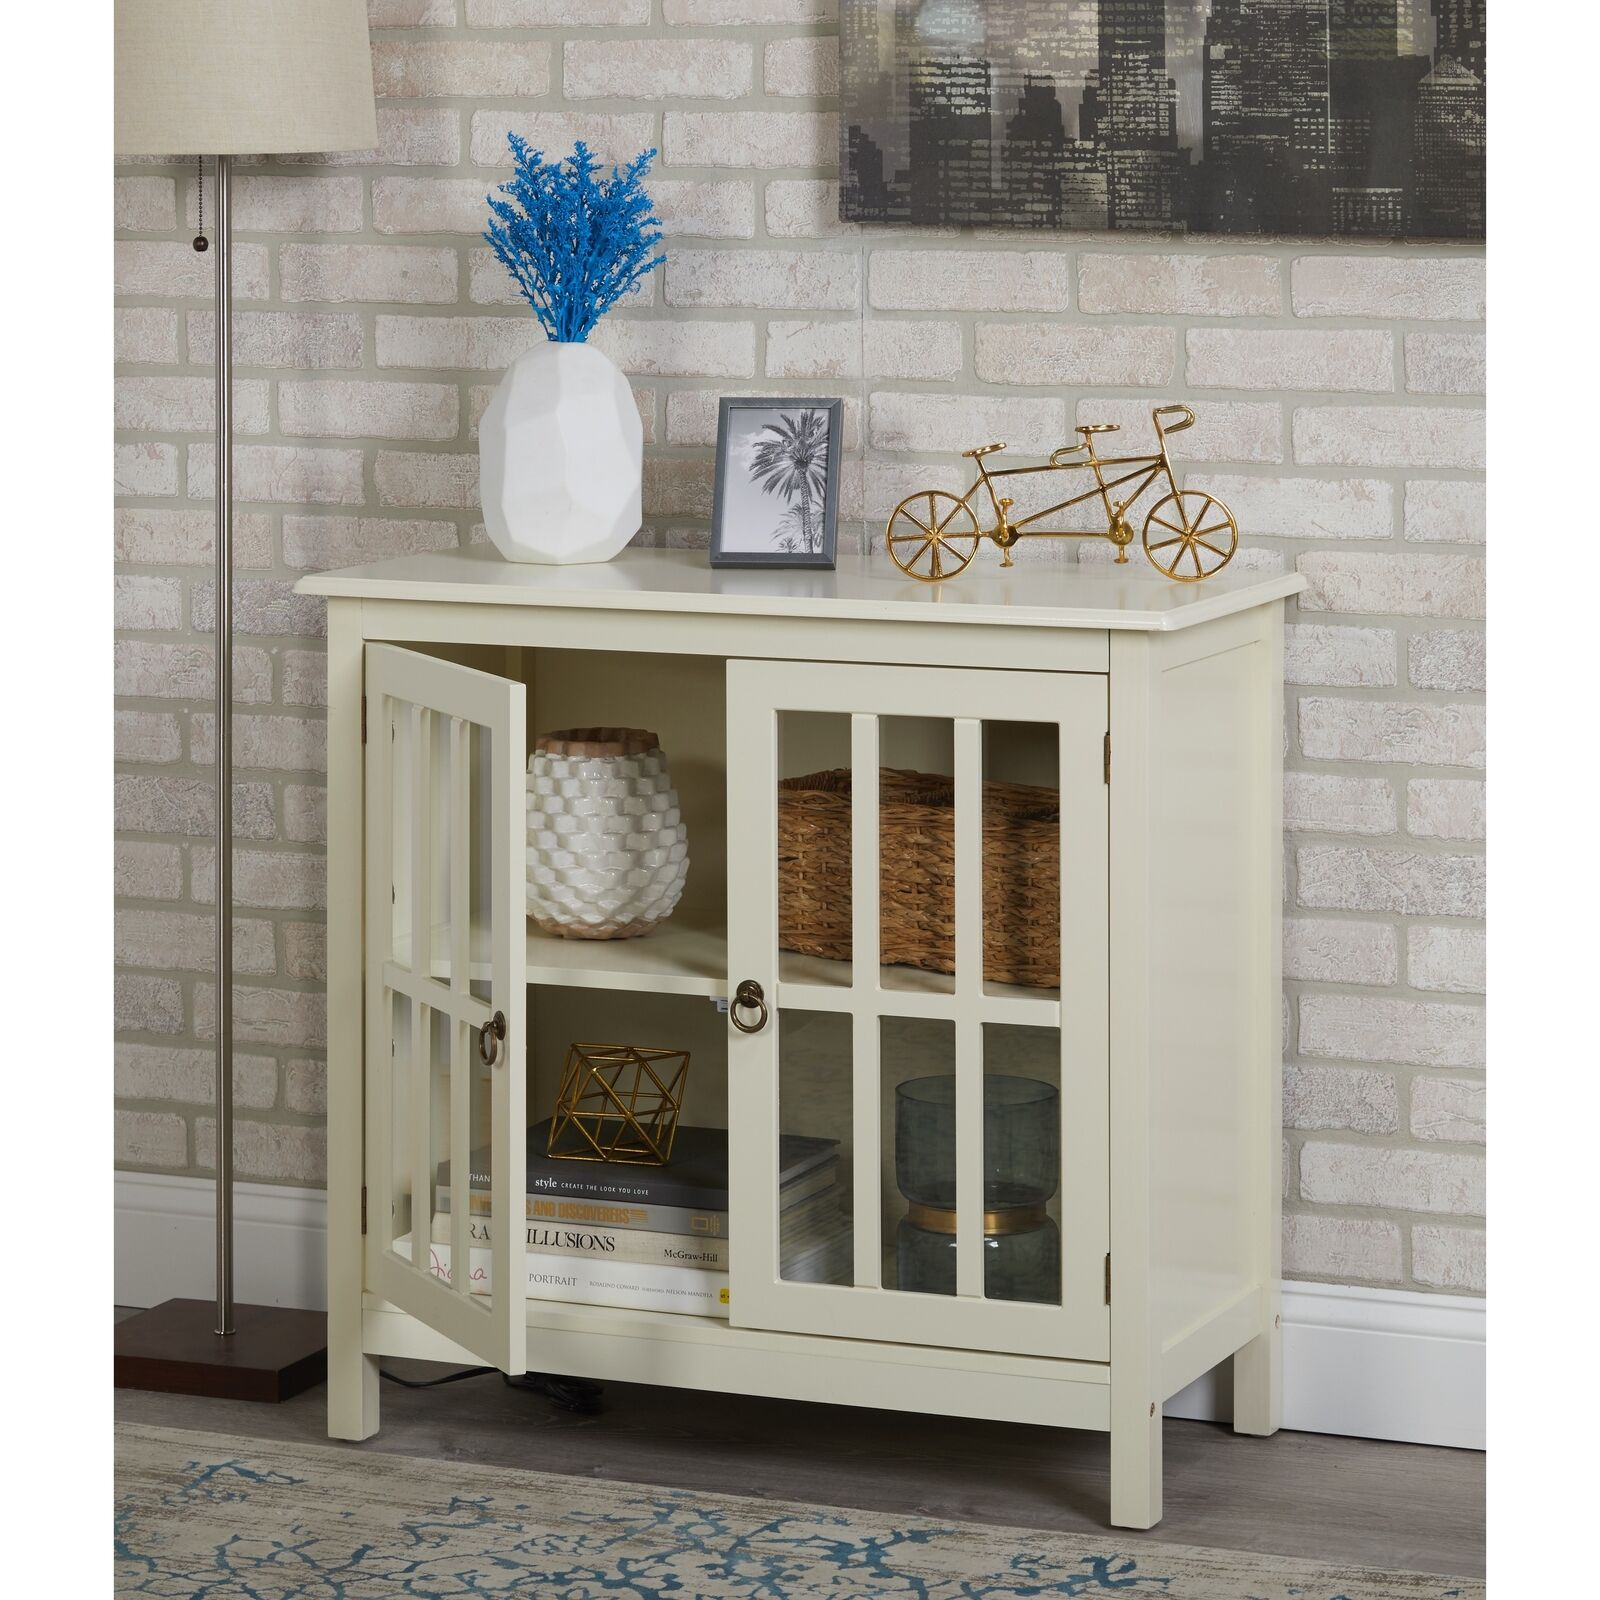 Details About Small Glass Door Cabinet Display Antique White Wood 2 Door 2  Shelf Curio Buffet Throughout Wooden Curio Buffets With Two Glass Doors (Photo 1 of 30)